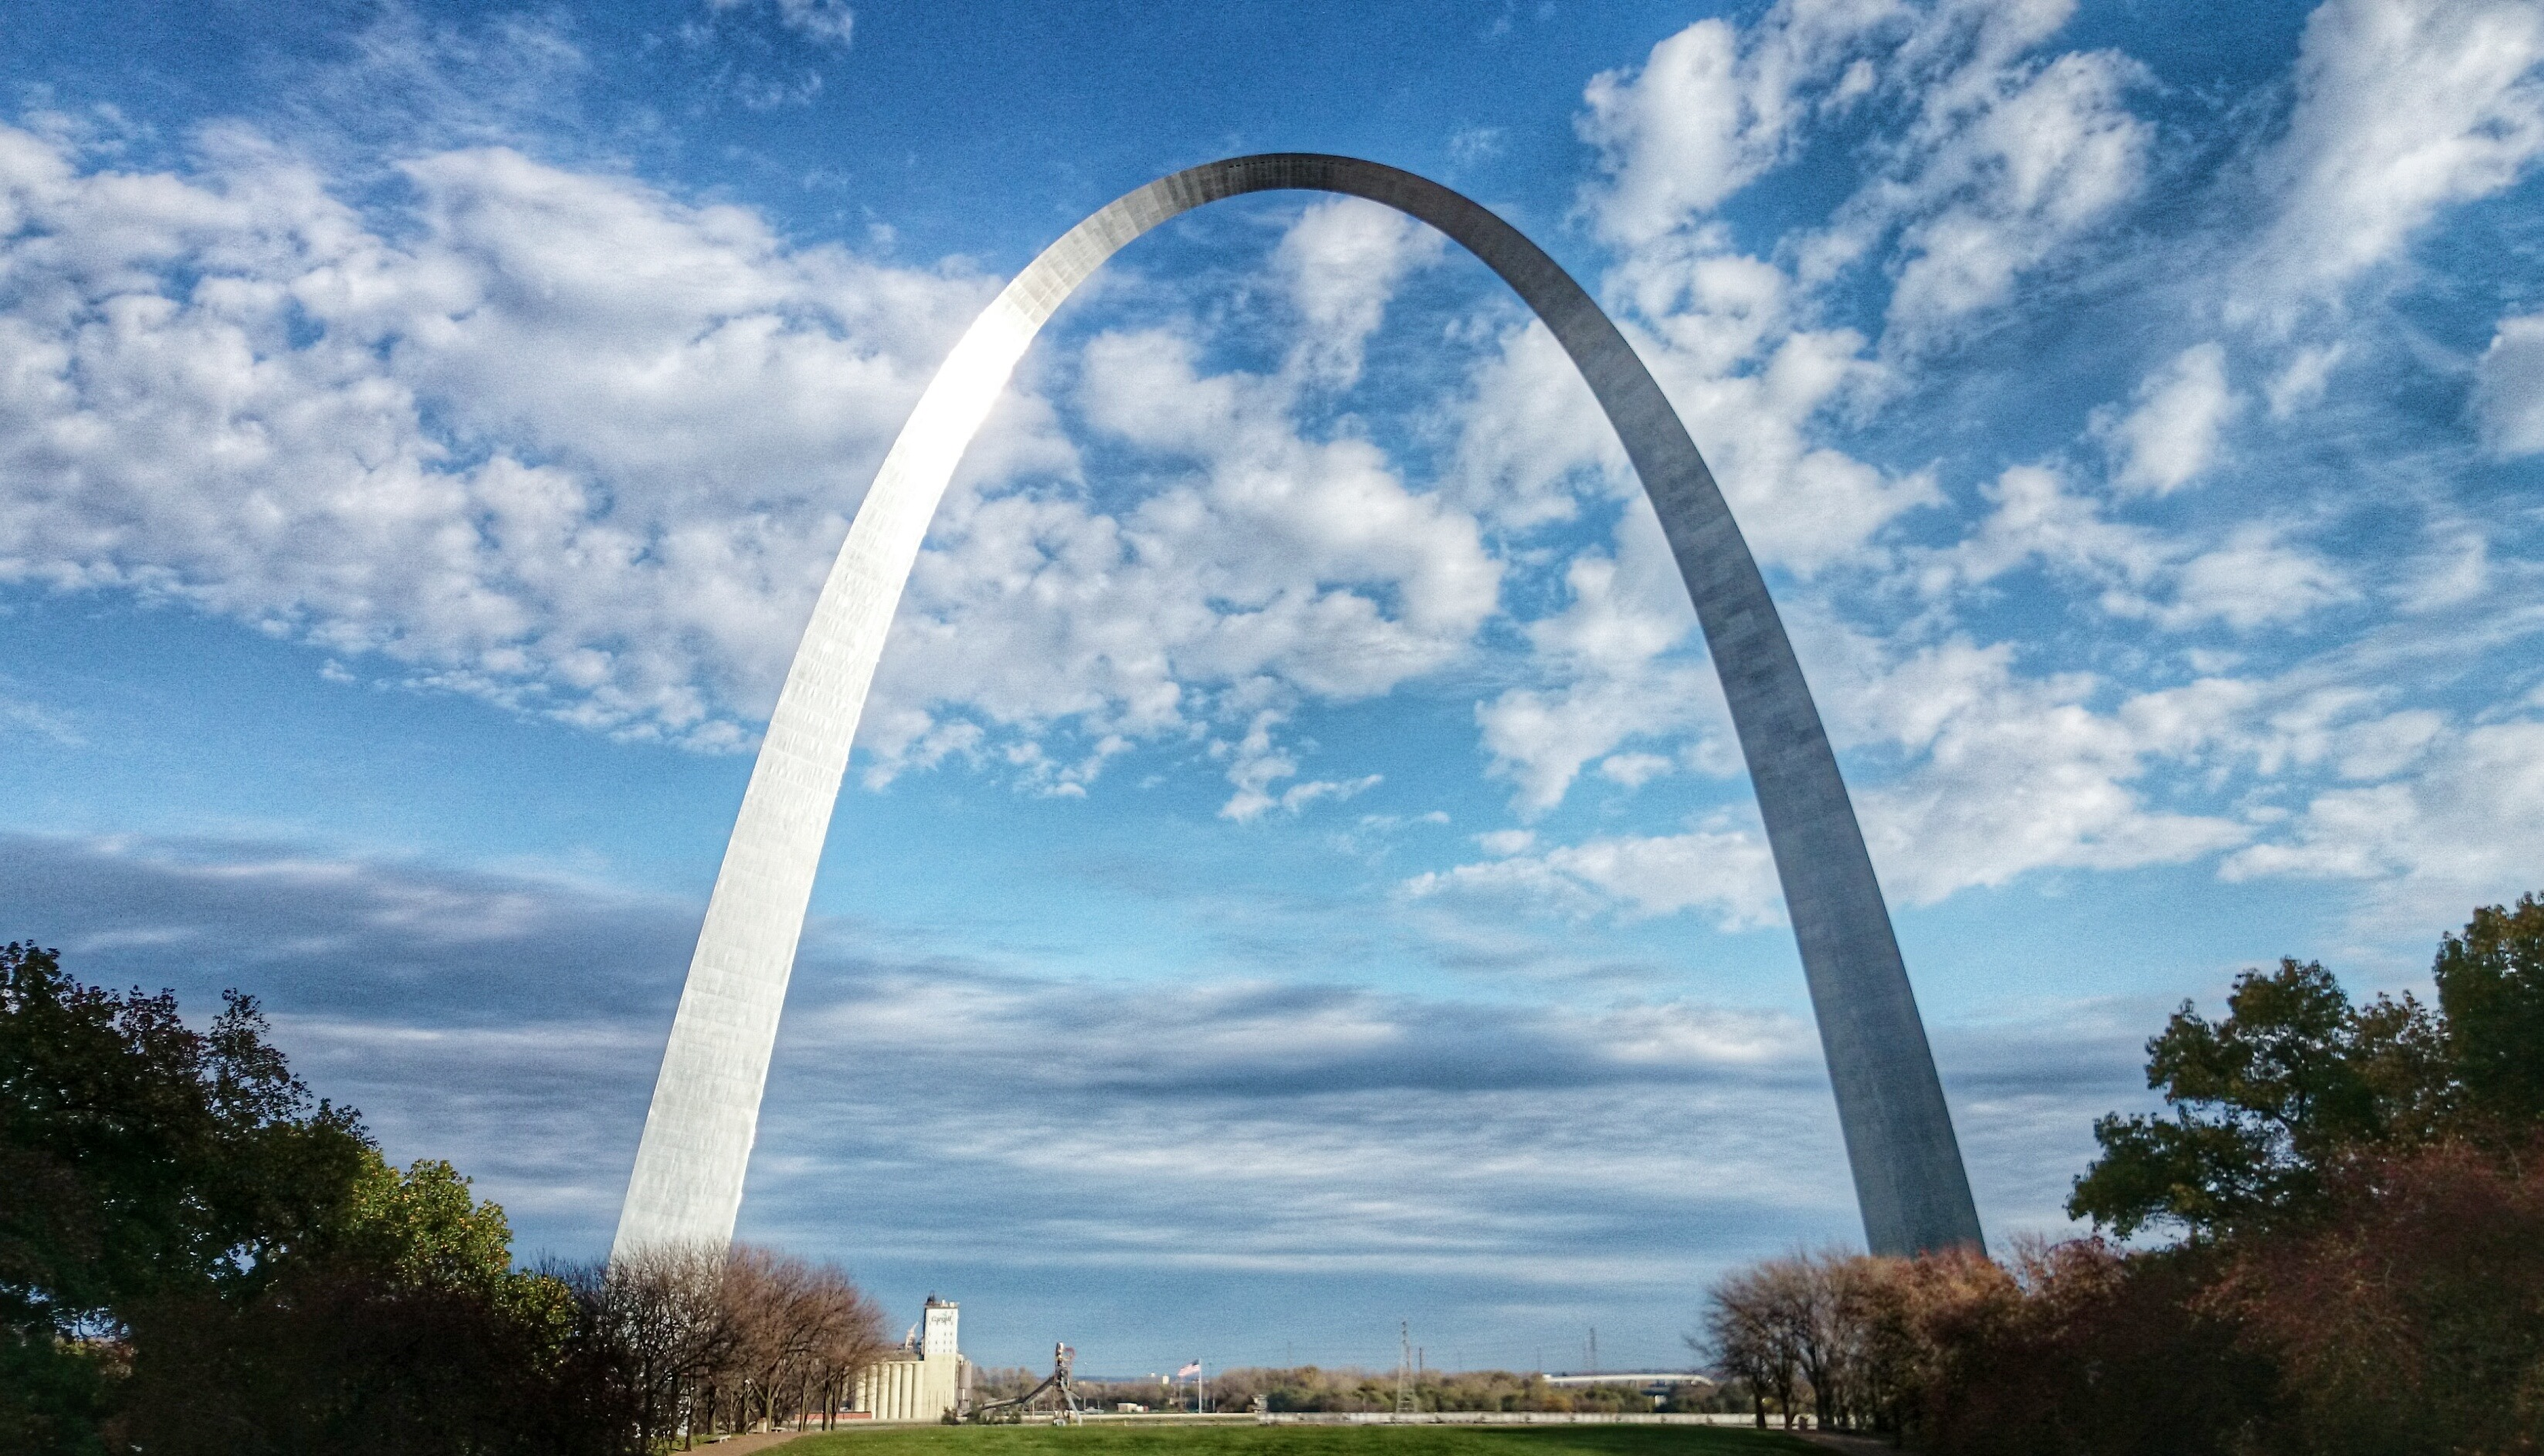 Gateway arch photo